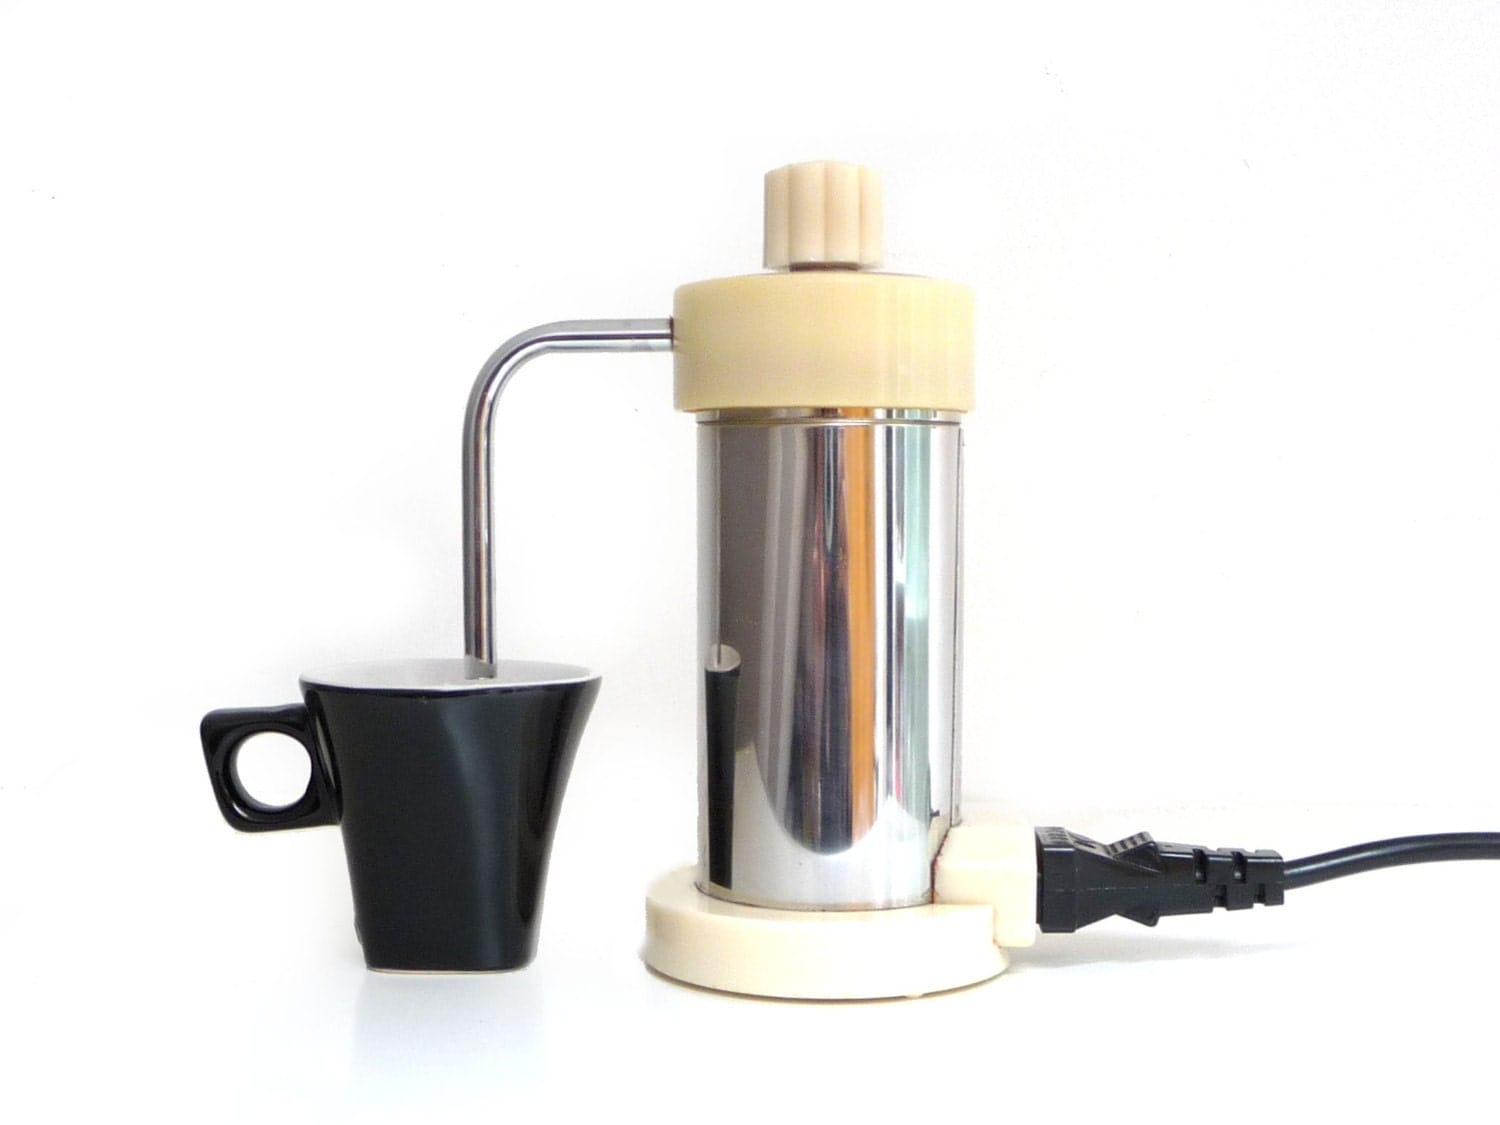 vintage electric espresso coffee maker percolator italian. Black Bedroom Furniture Sets. Home Design Ideas